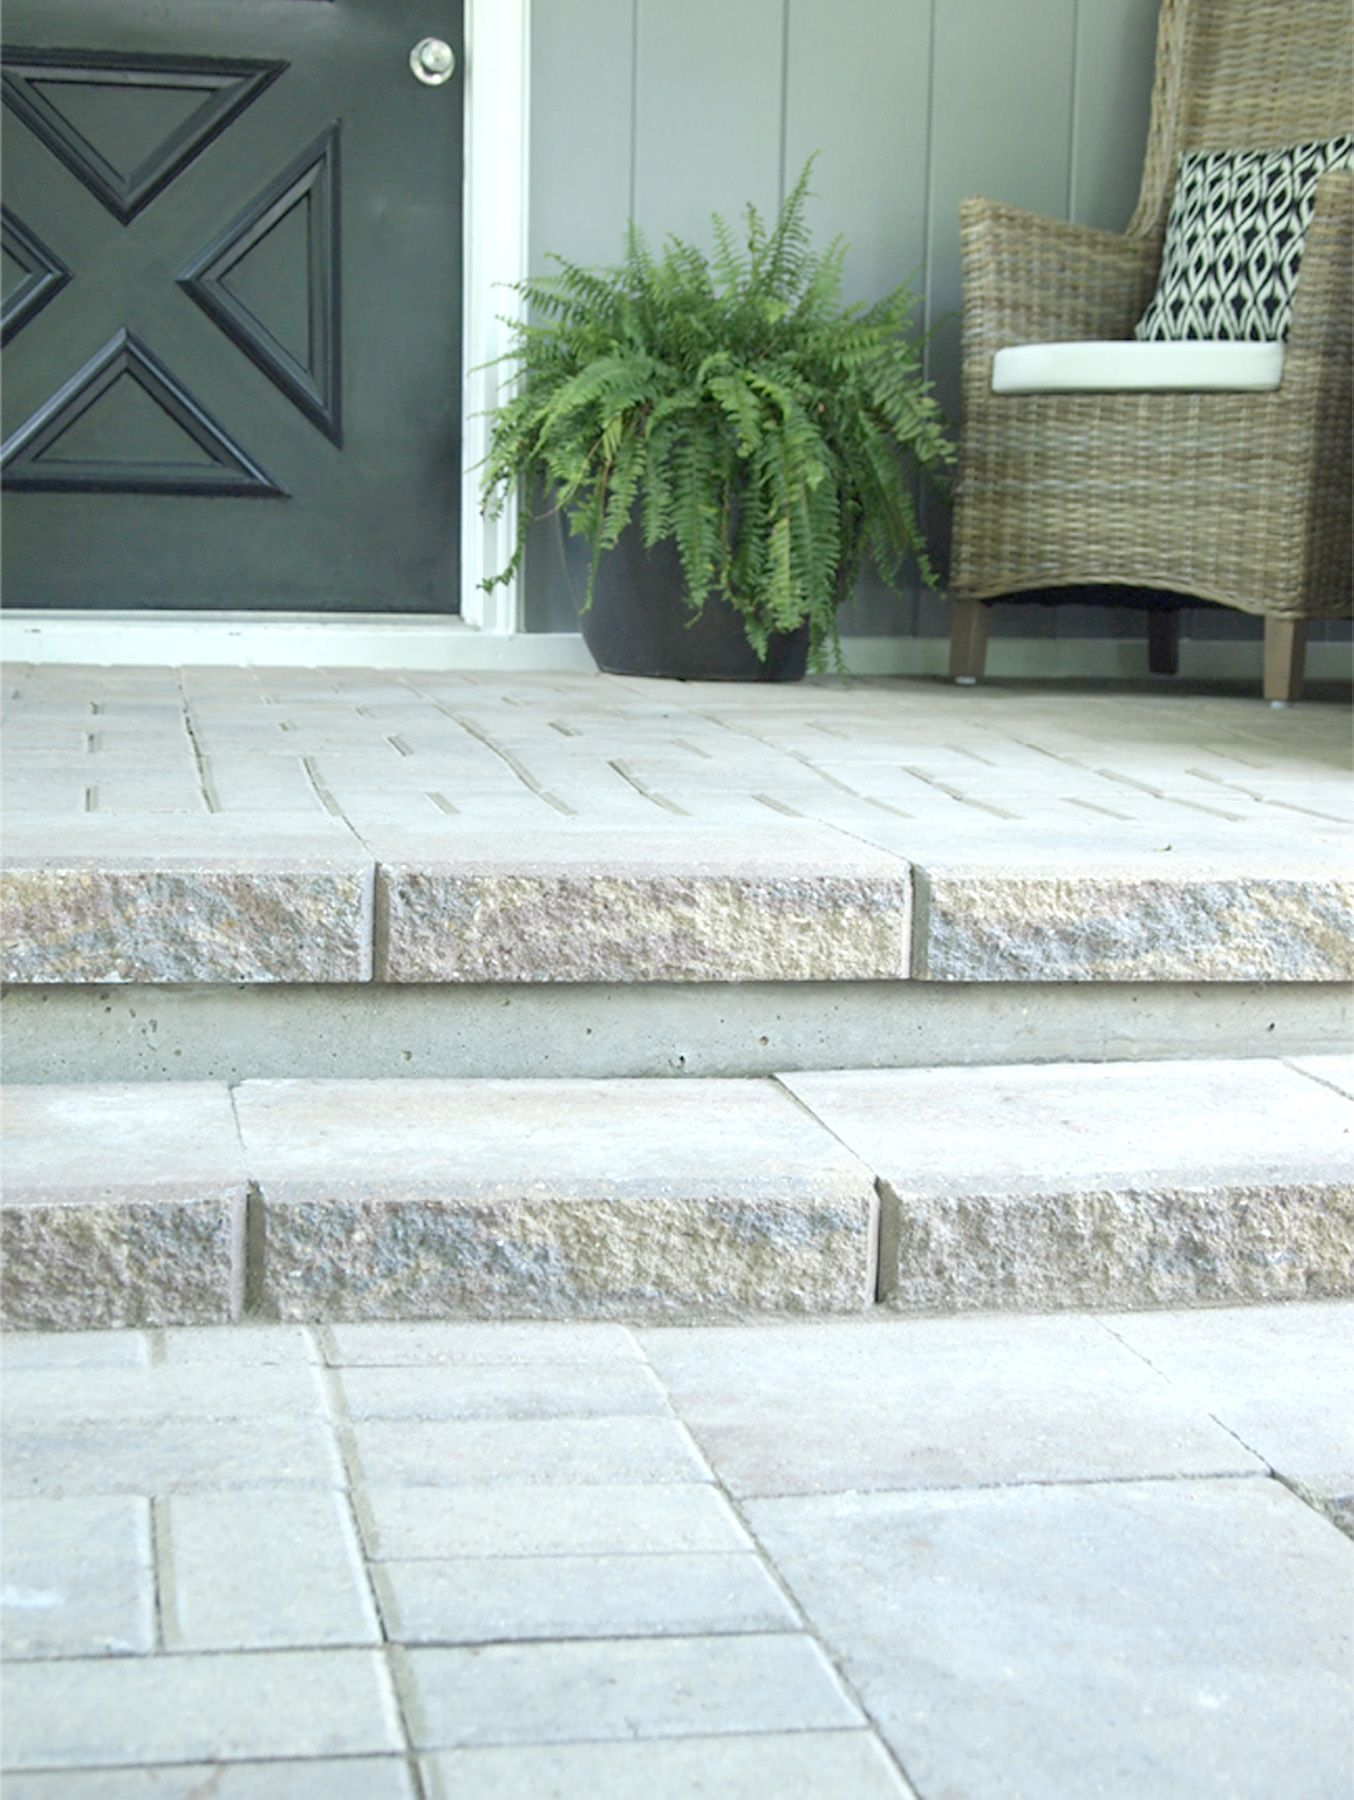 patio concrete slabs. Paver Patio And Steps To Cover An Old Concrete Slab Slabs 3